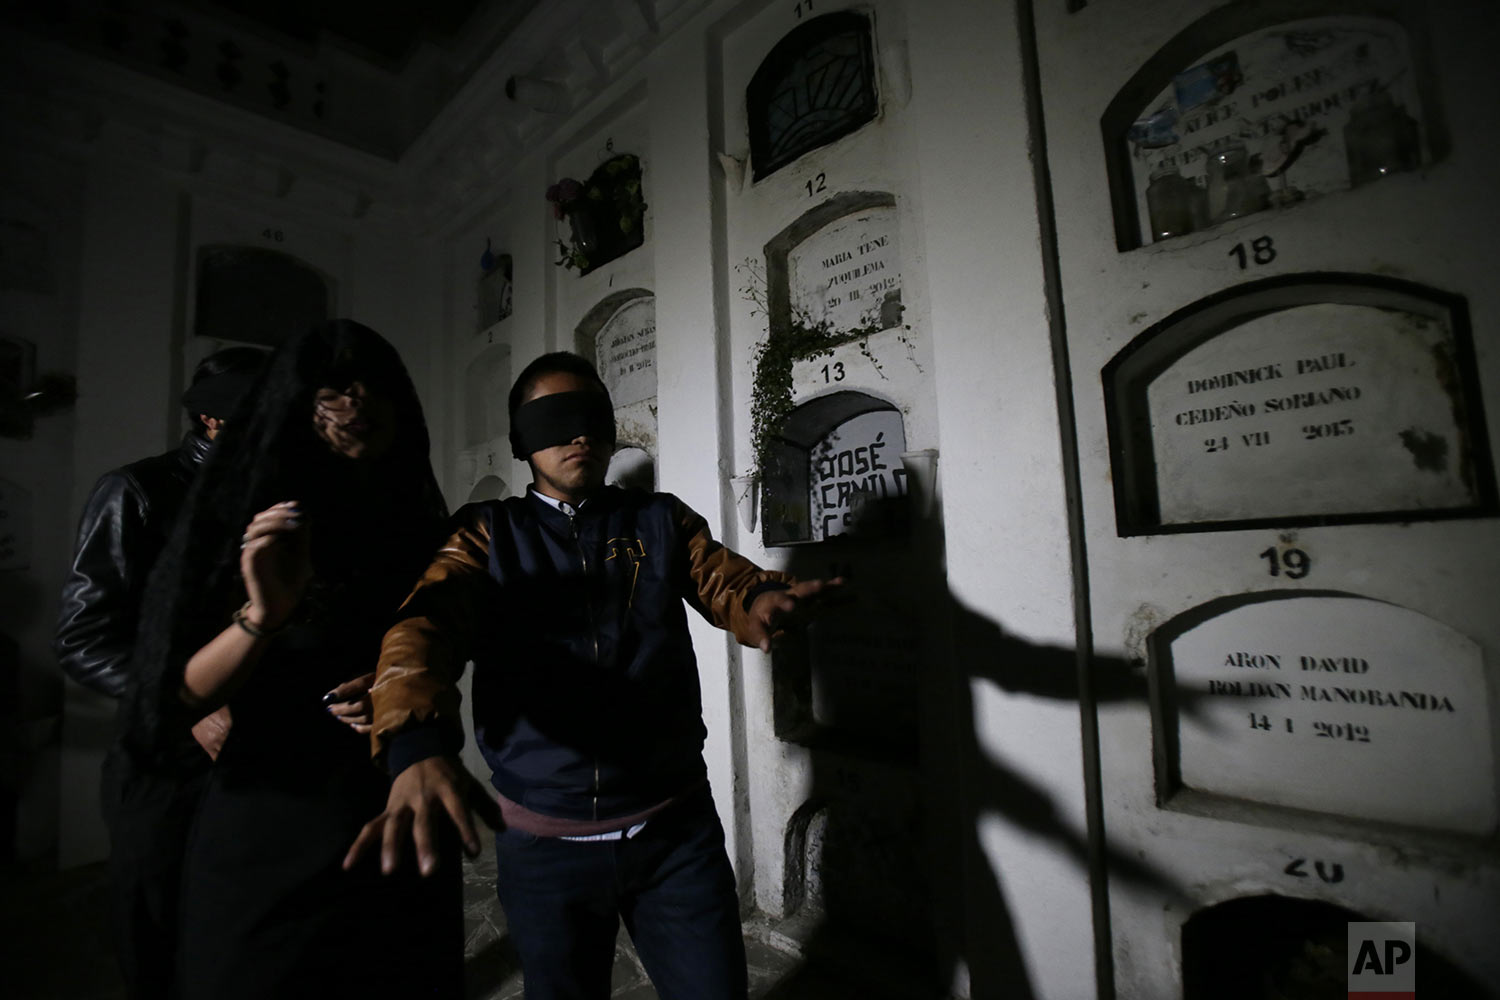 """Blindfolded tourists walk through El Tejar cemetery in Quito, Ecuador, Wednesday, Sept. 11, 2019. They're there to get a taste of death while still alive, spending part of the night in a dark crypt at the El Tejar cemetery, the latest example of the so-called """"necro tourism"""" trend luring those with a keenness for the macabre. (AP Photo/Dolores Ochoa)"""